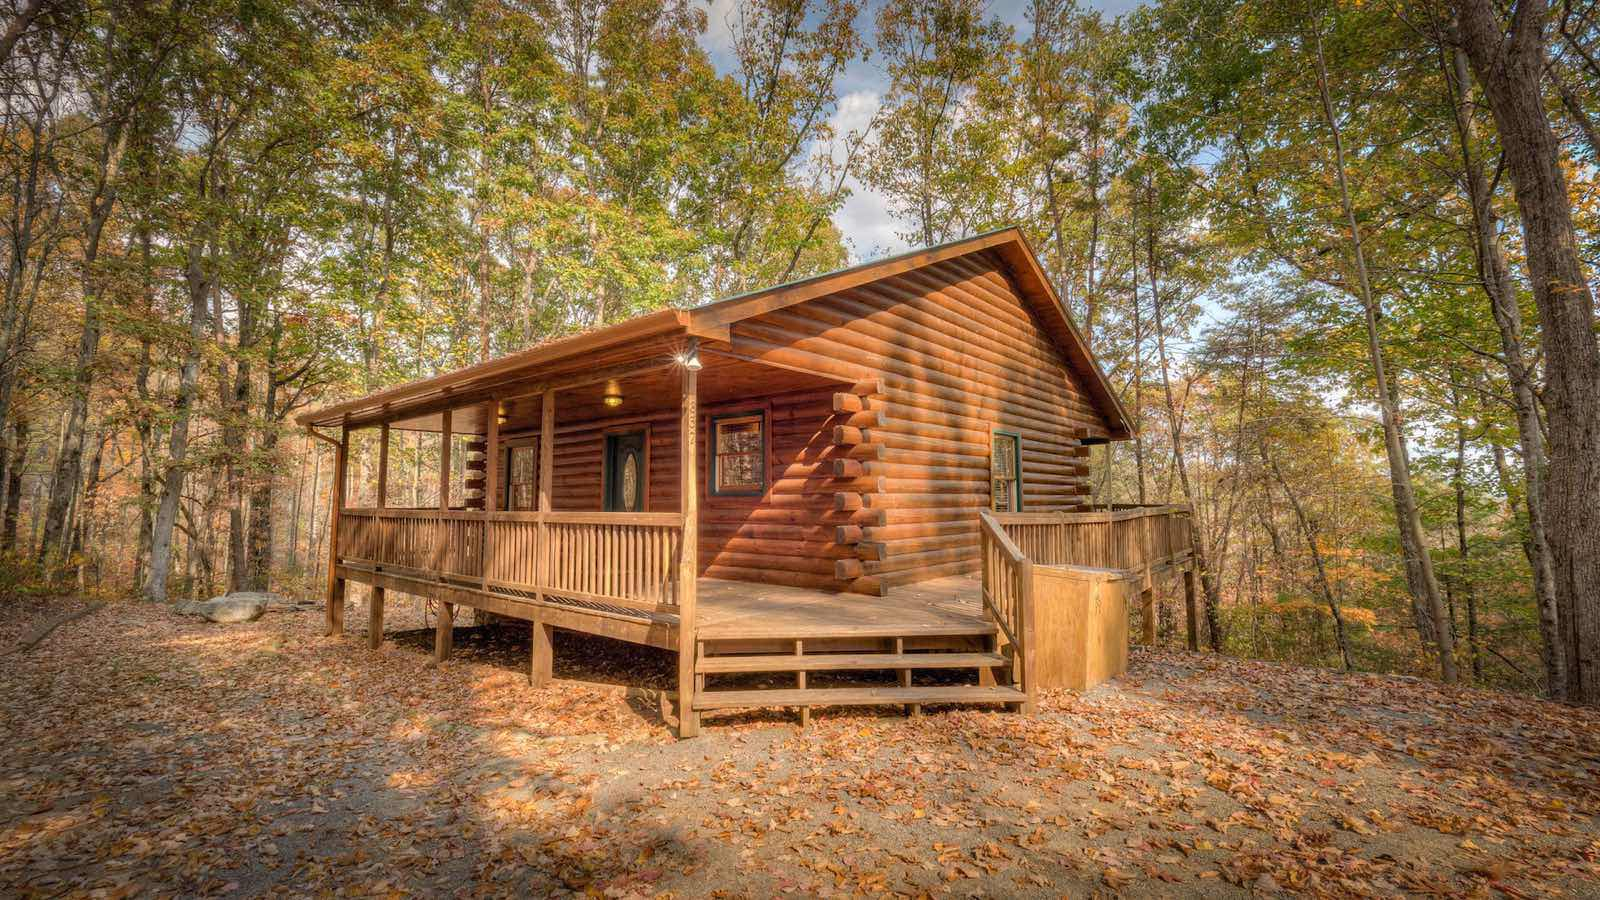 Blue ridge north georgia cabin rentals for 8 bedroom cabins in blue ridge ga